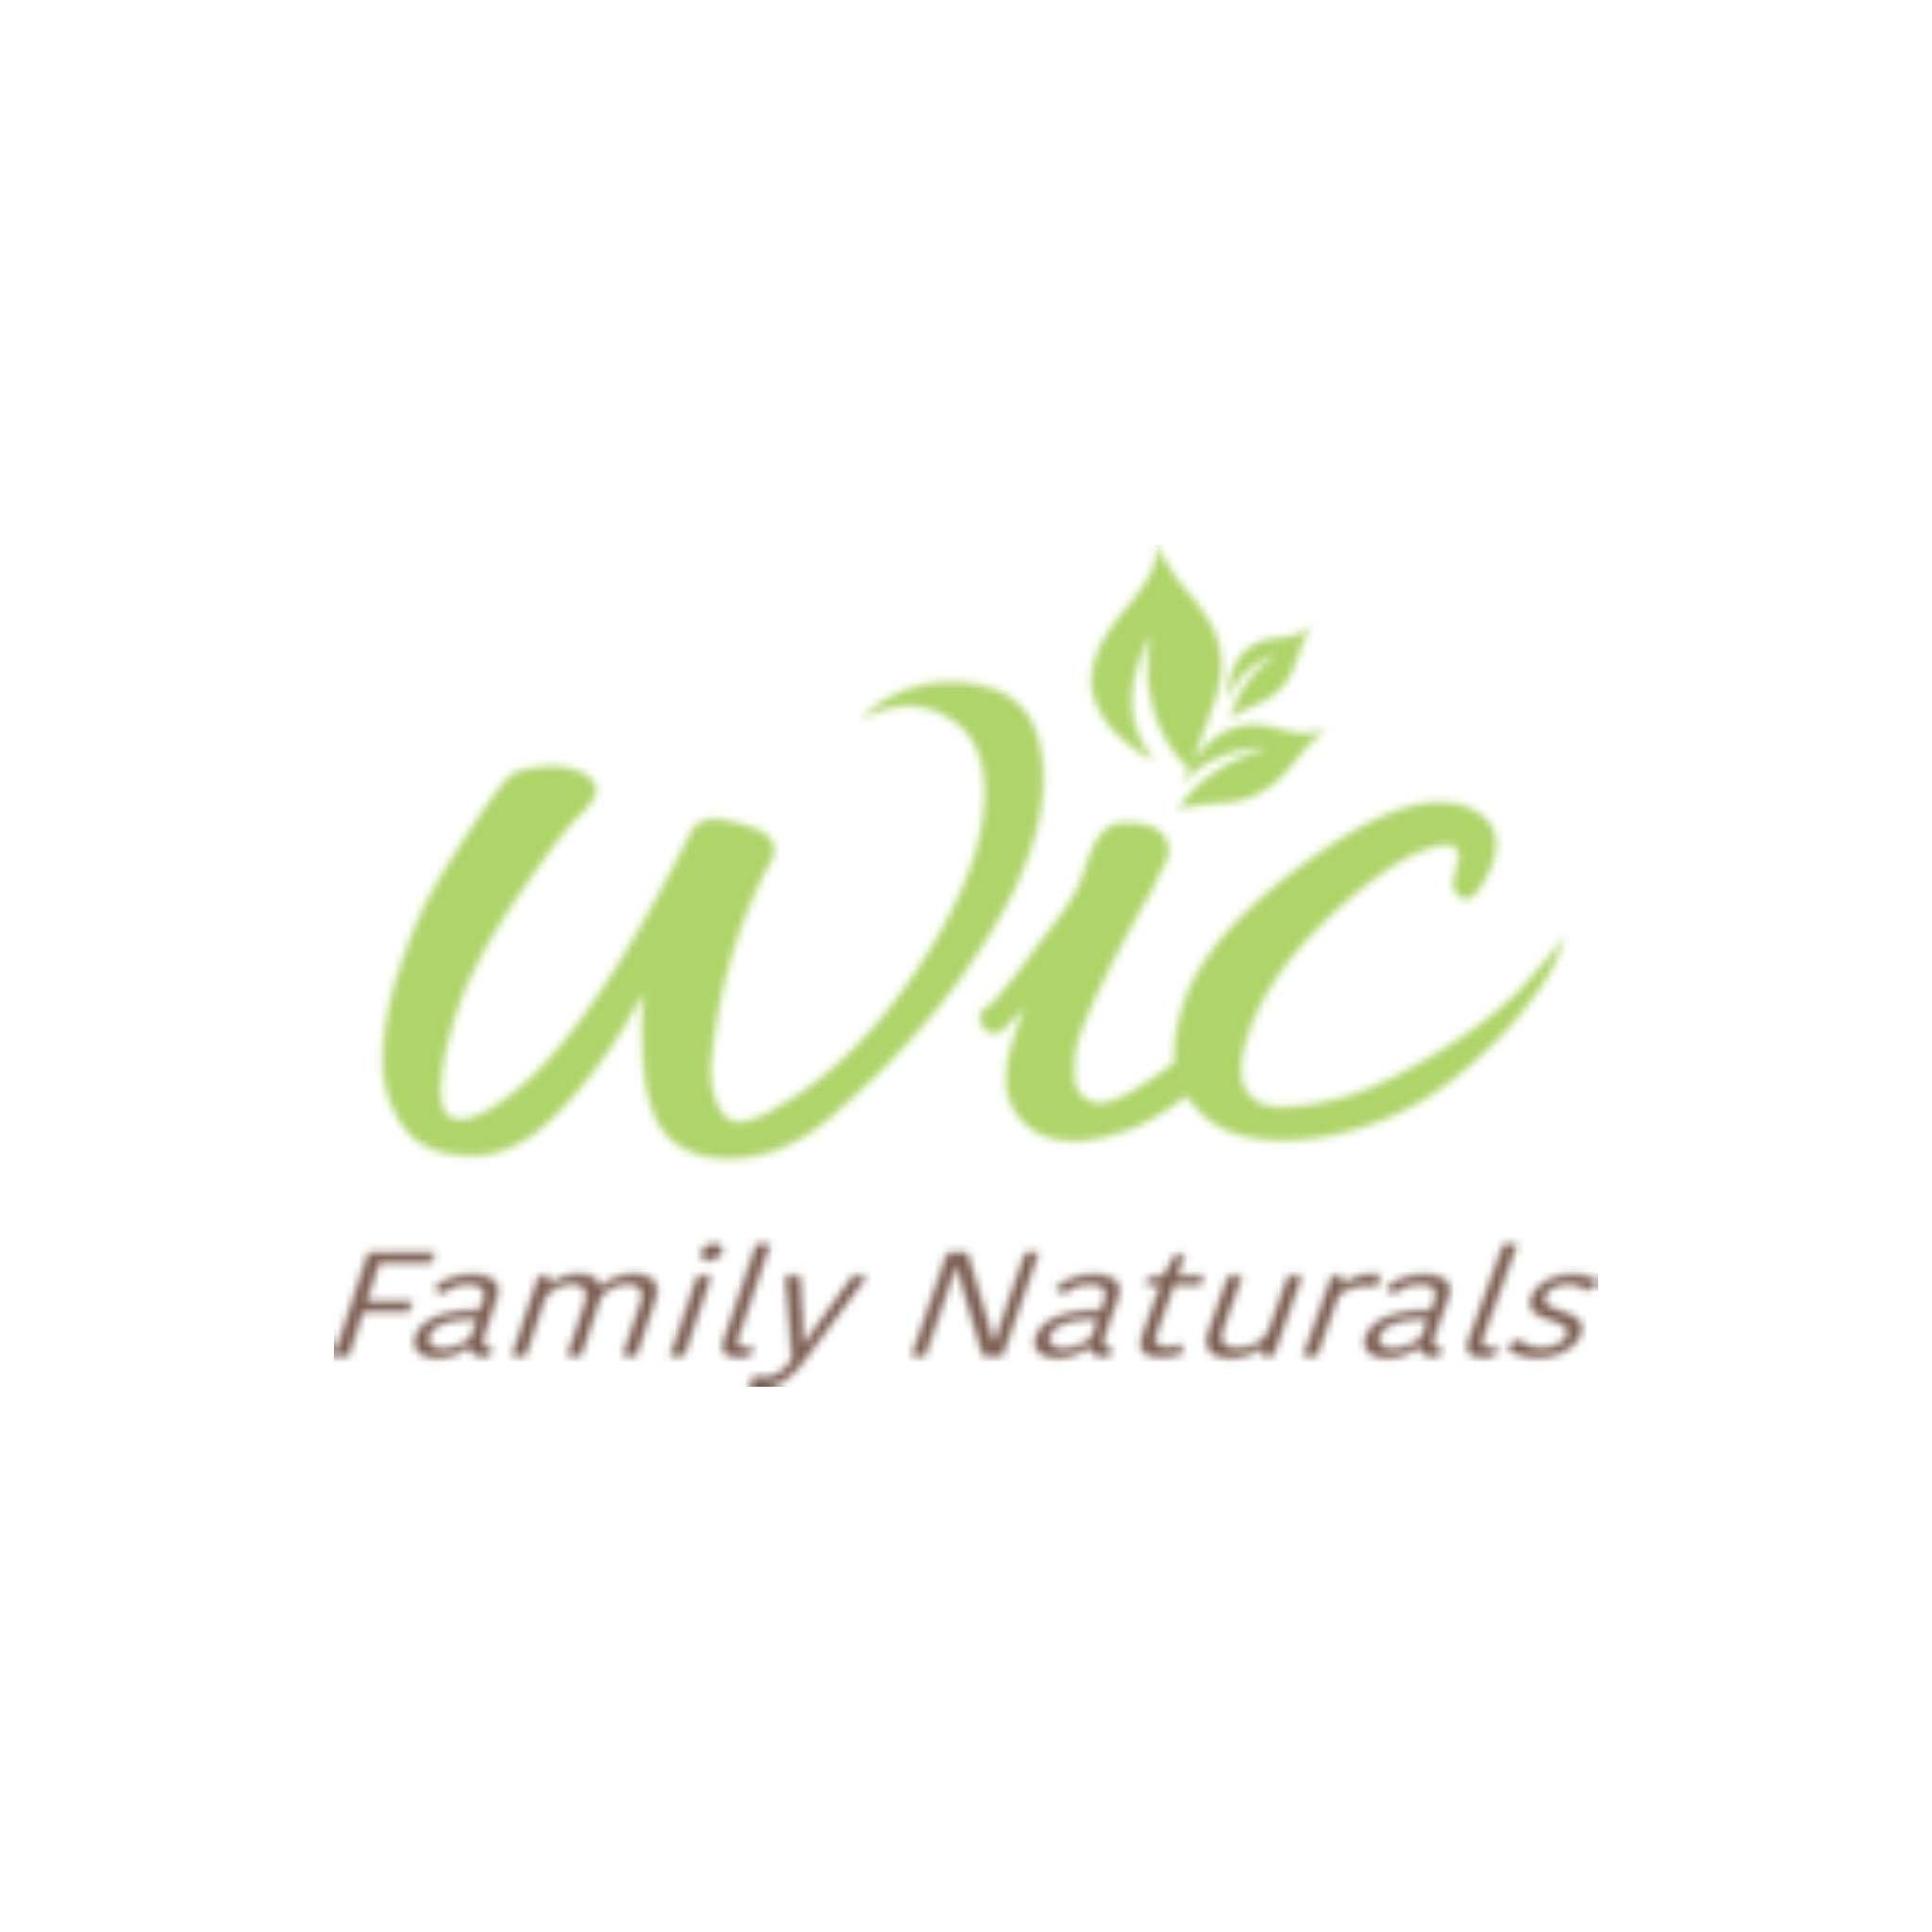 Wic Family Naturals Logo, Team Perfect